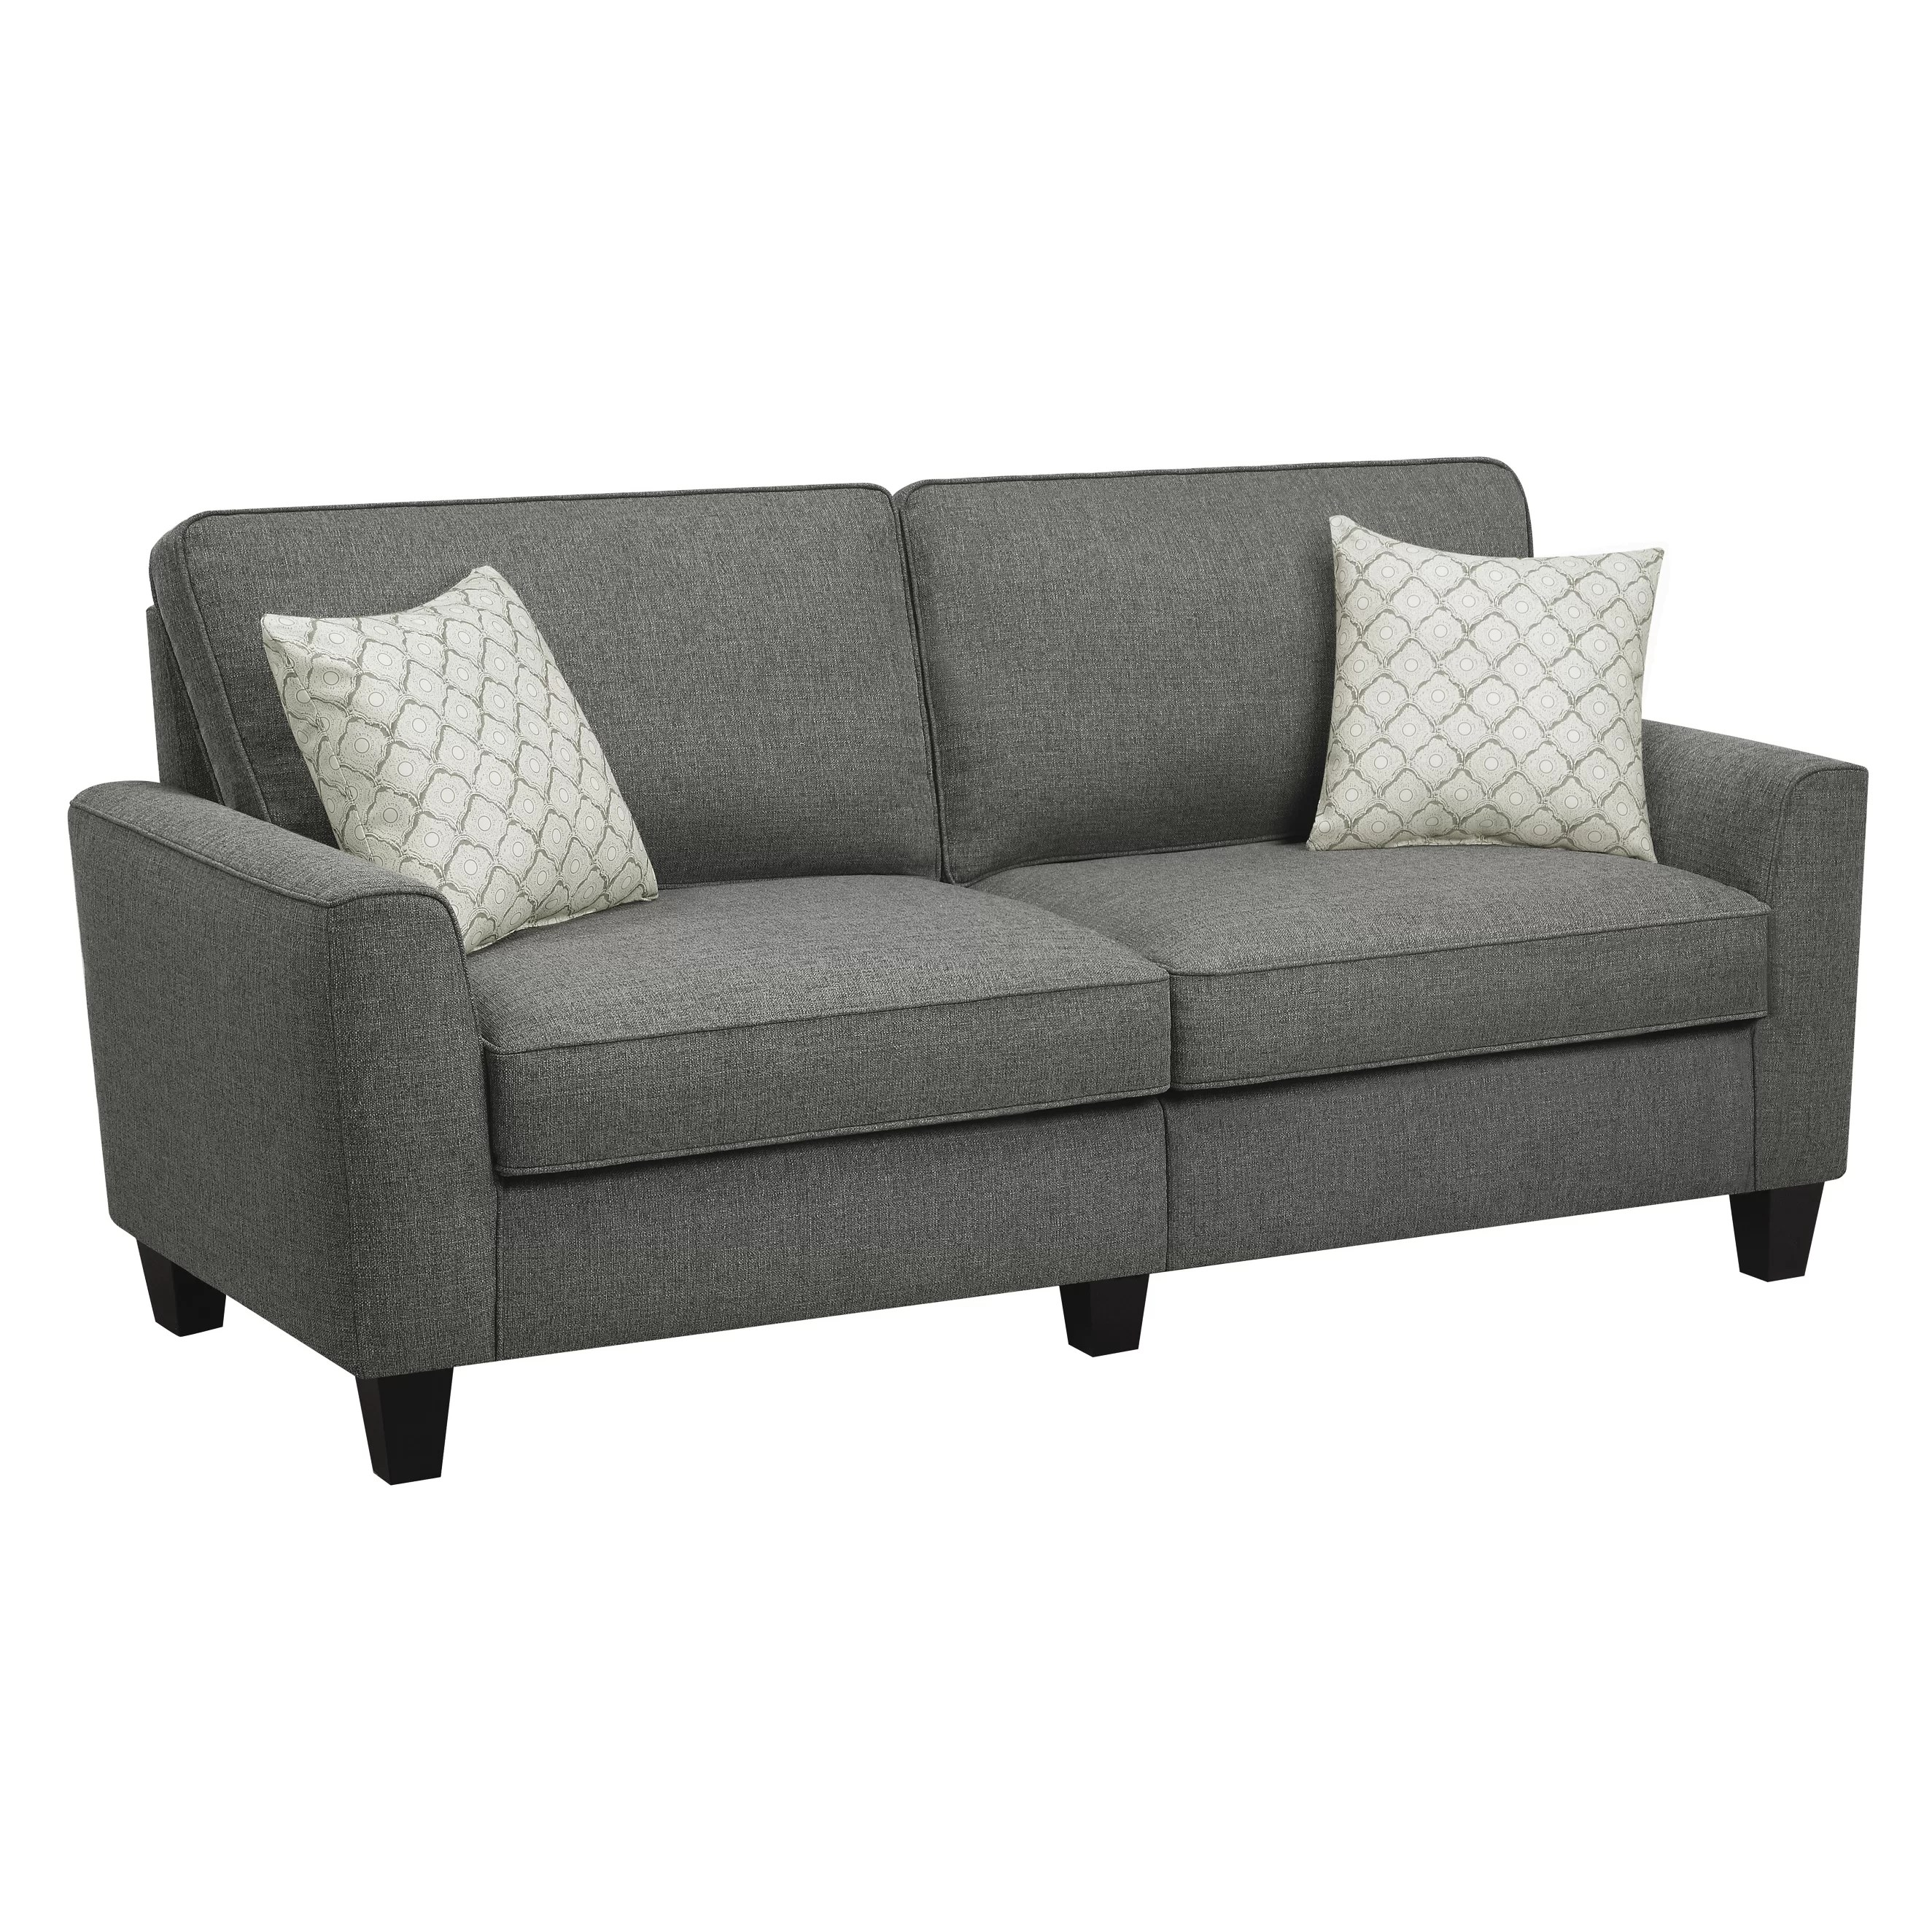 Serta at Home Serta RTA Astoria 73 Sofa  Reviews  Wayfair